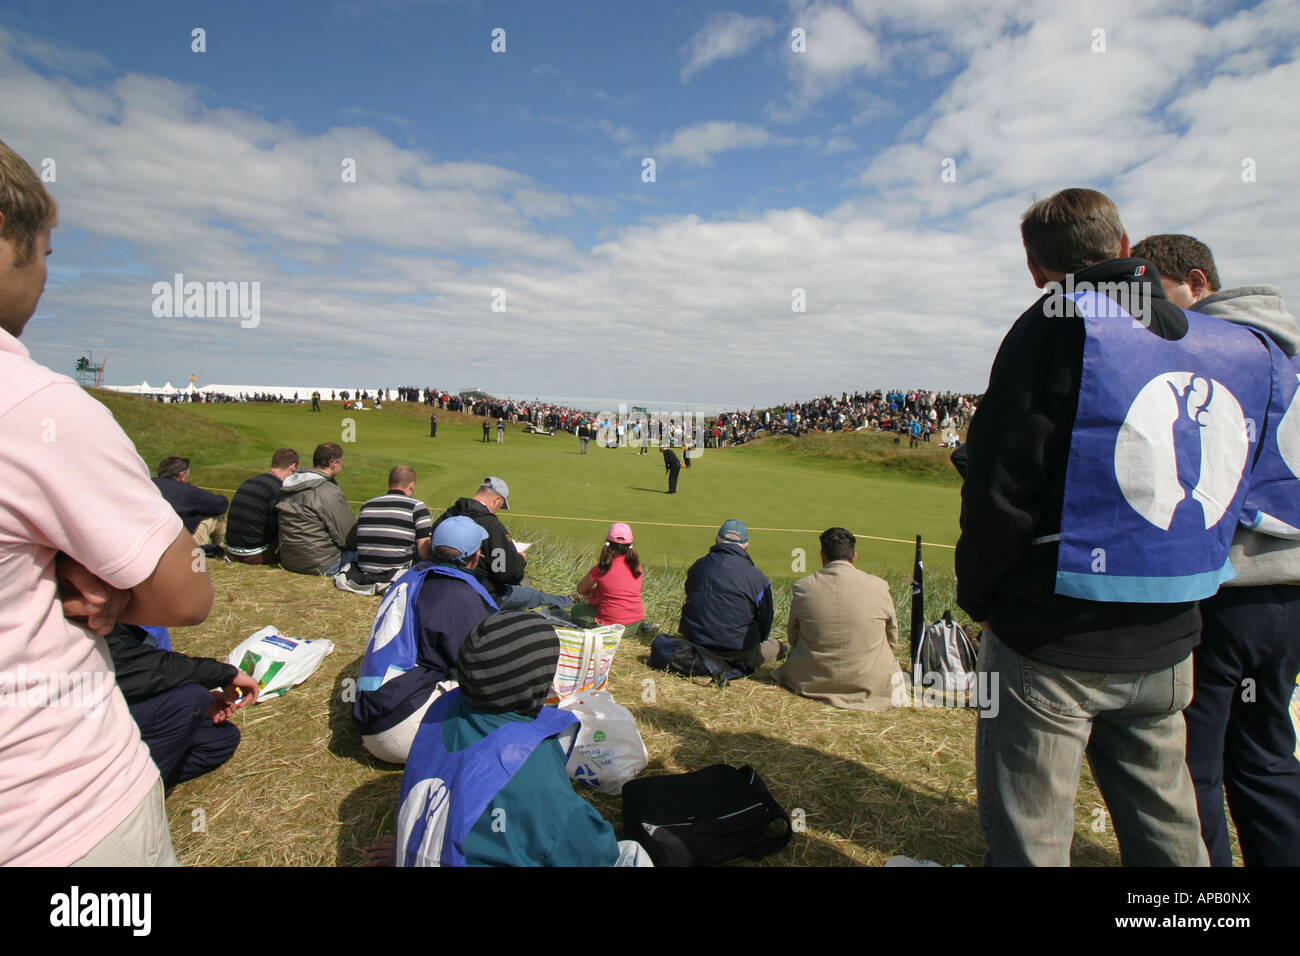 Golf fans at British open golf championship 2007 Carnoustie 1st hole - Stock Image